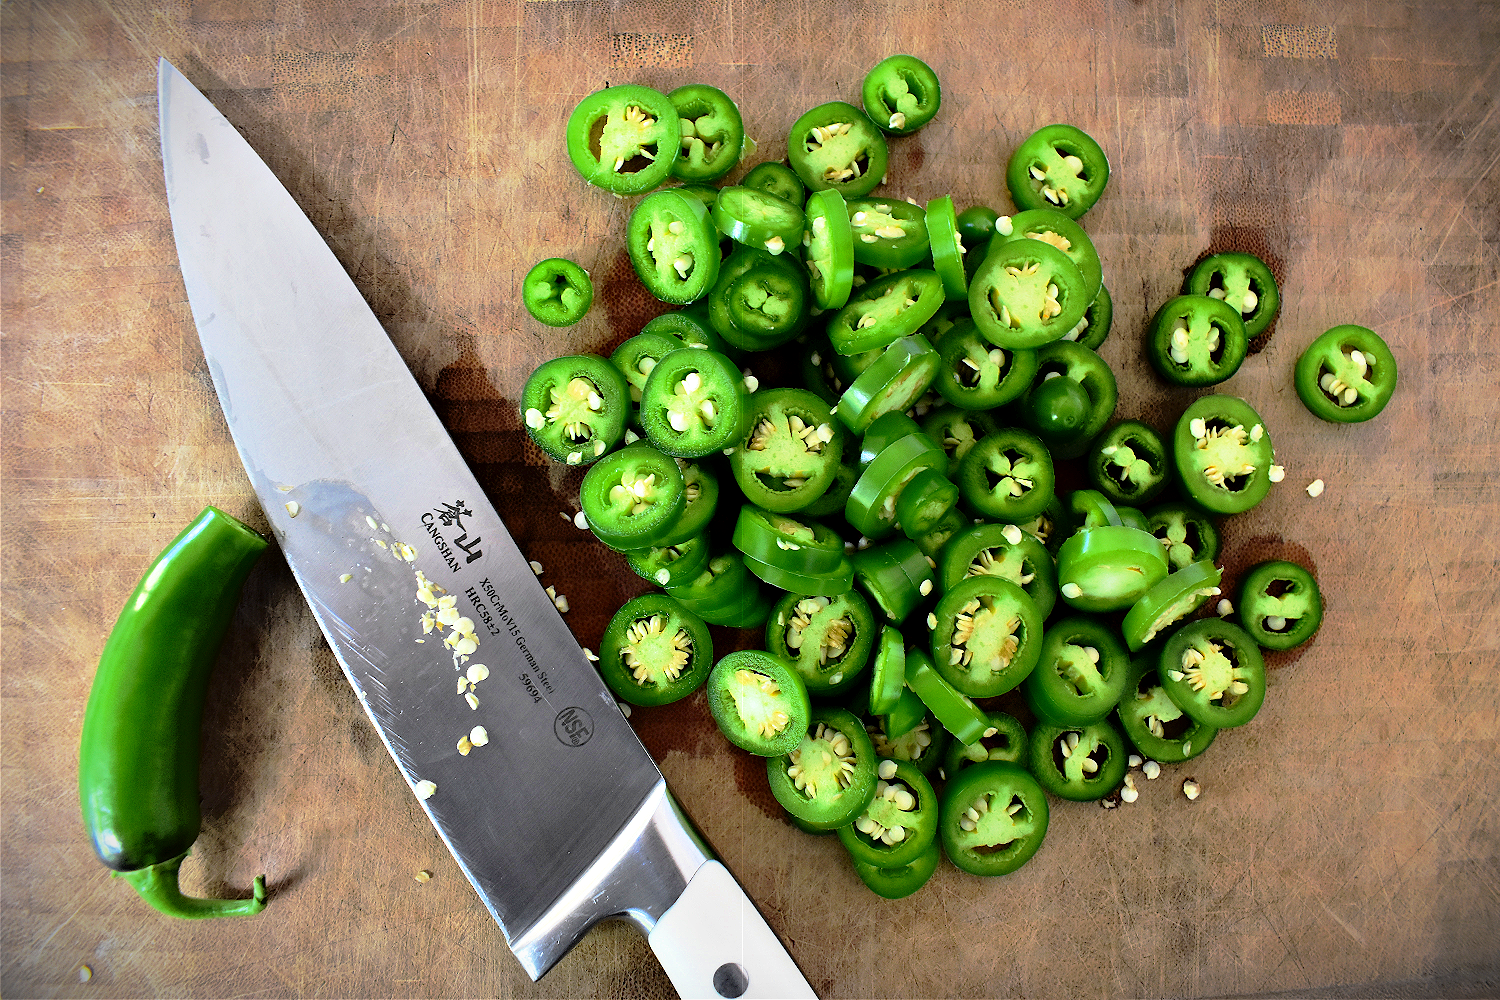 These easy fermented jalapeños are a great way to add a little spicy heat to any dish along with a healthy dose of probiotics. And all you need are three simple ingredients: water, salt and fresh jalapeños!